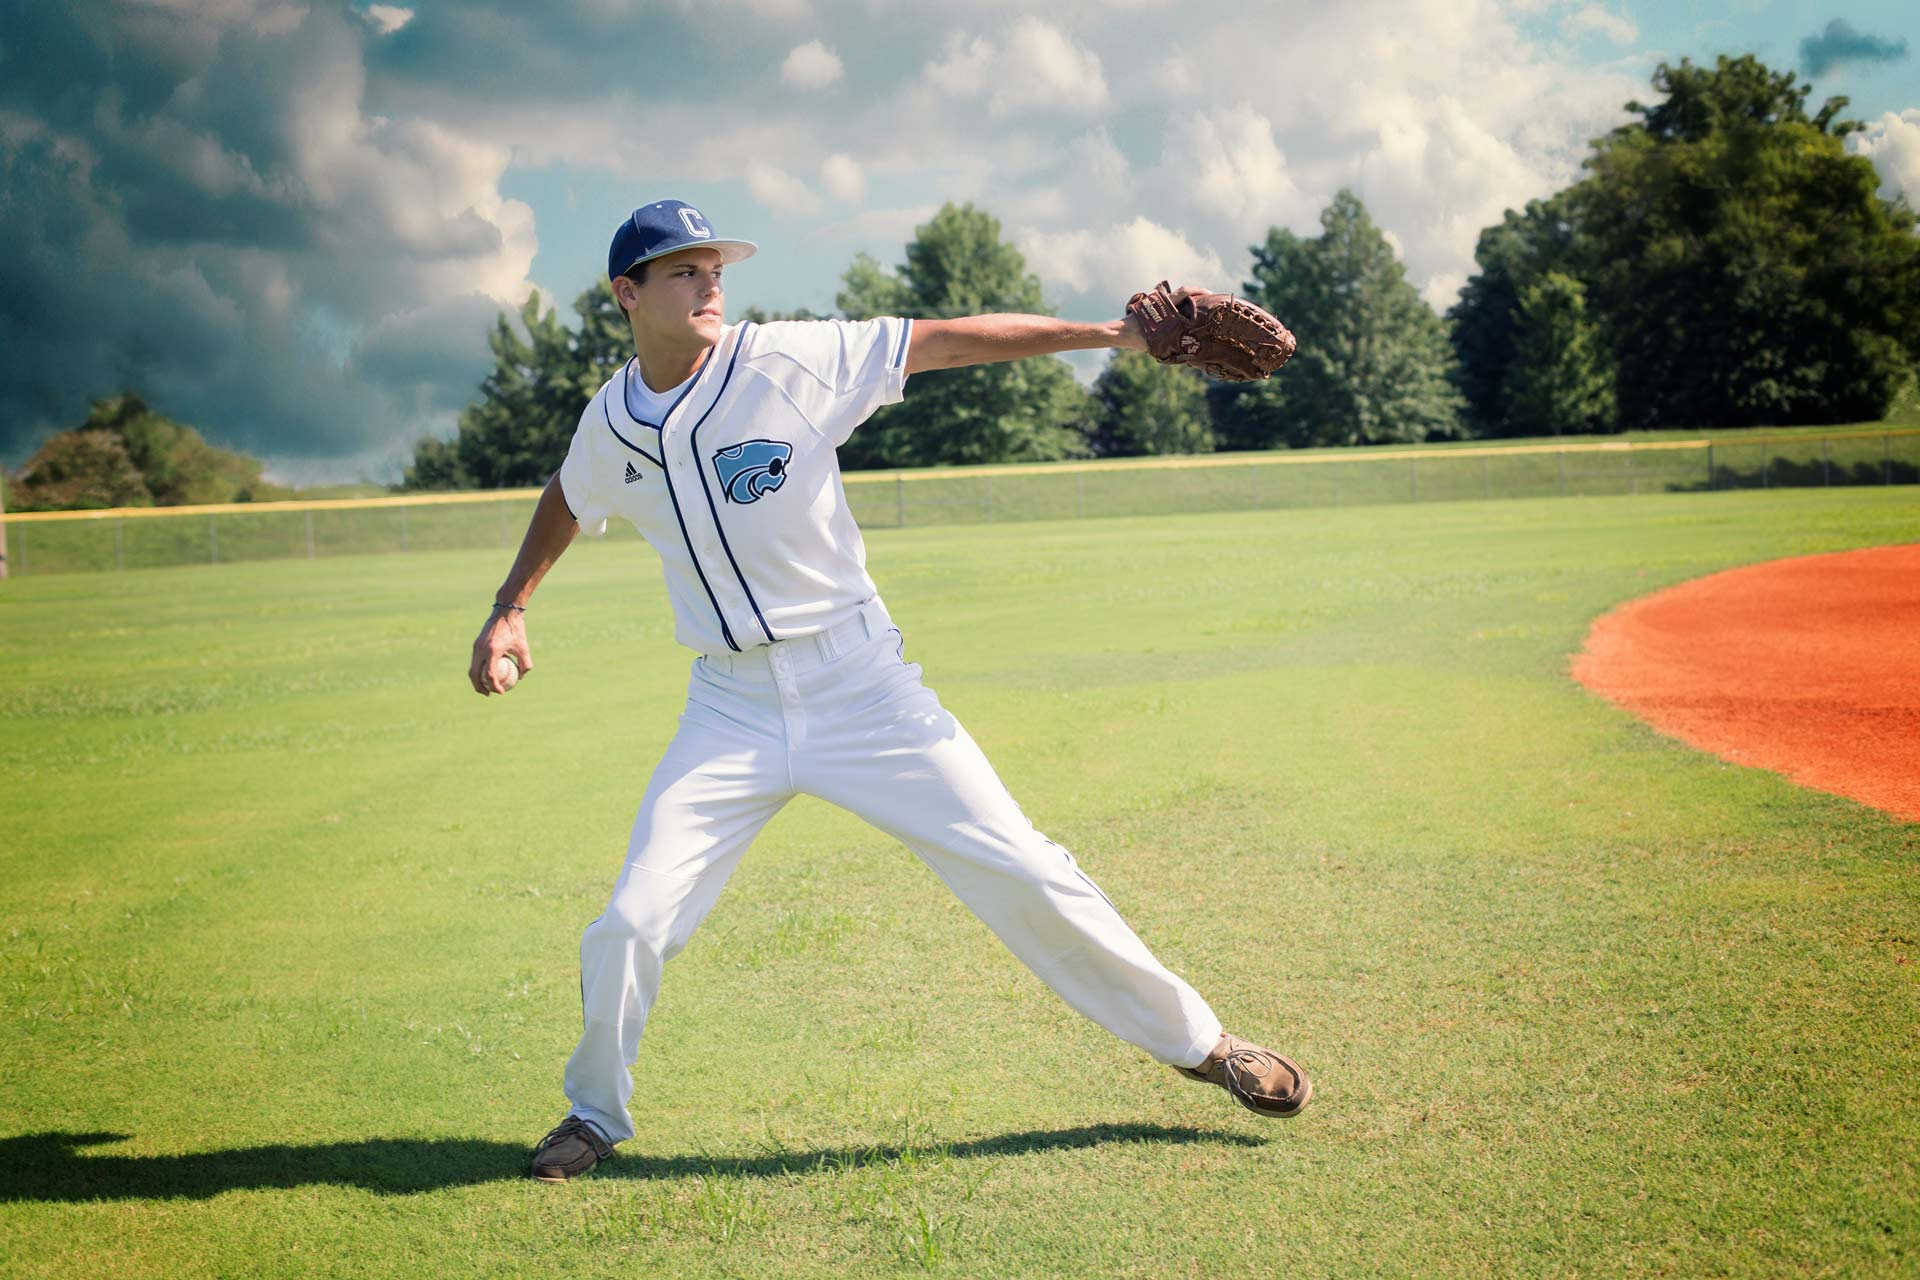 Senior Photos for Centennial HS Baseball Player